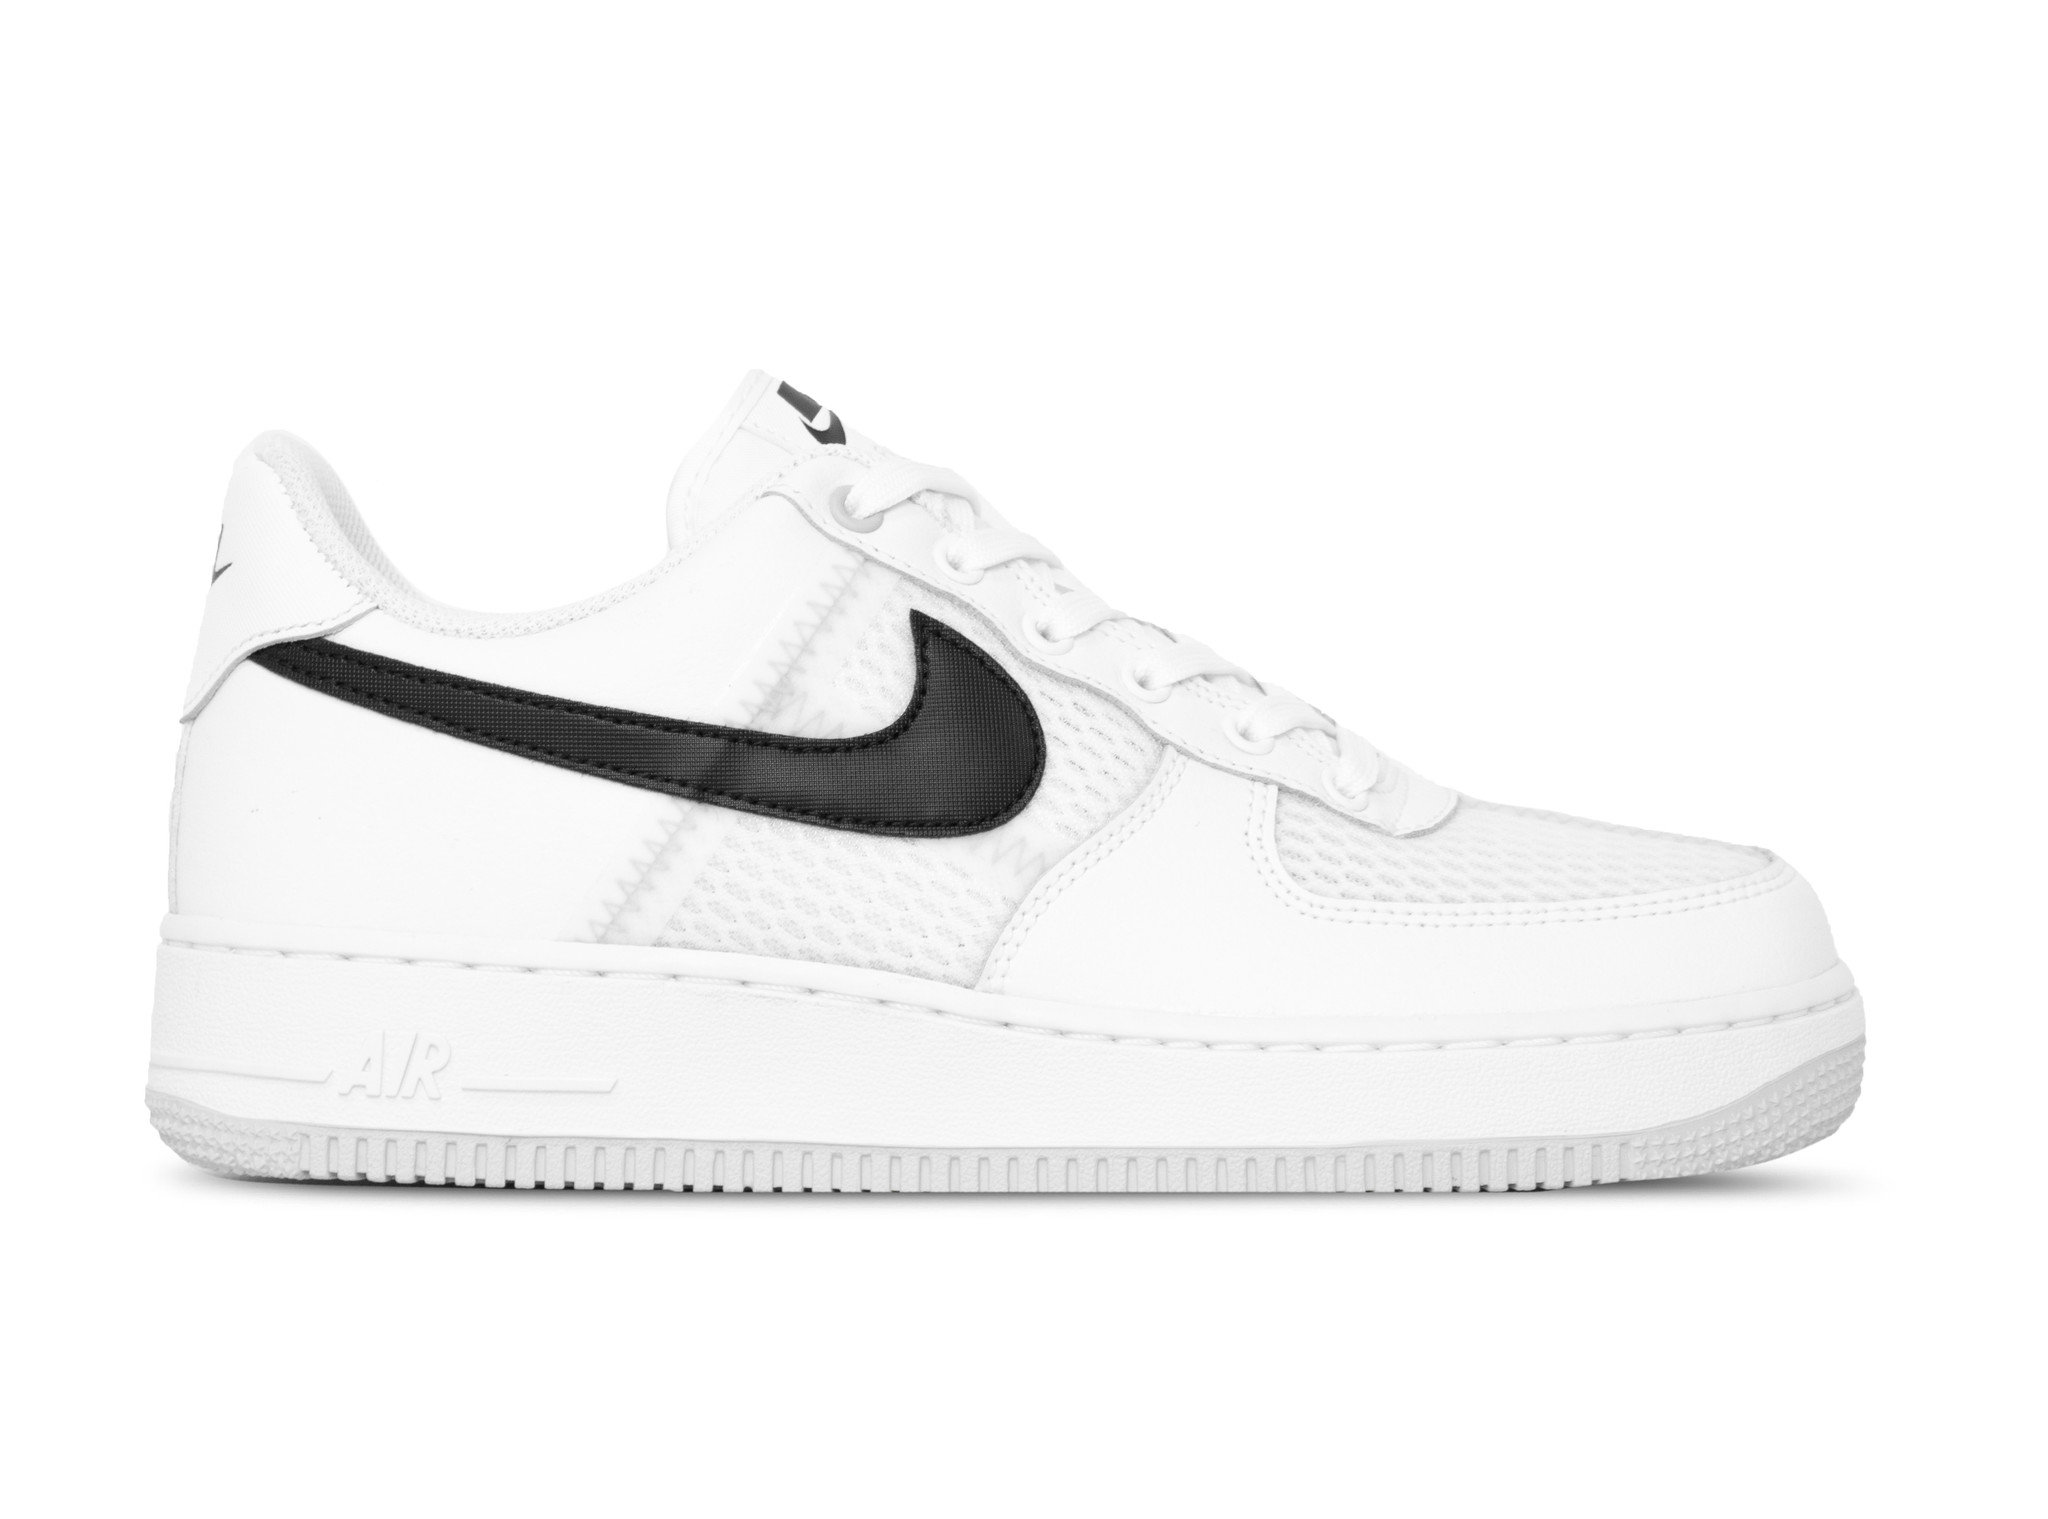 Nike Air Force 1 '07 LV8 White Black Pure Platinum CI0060 100 | Bruut